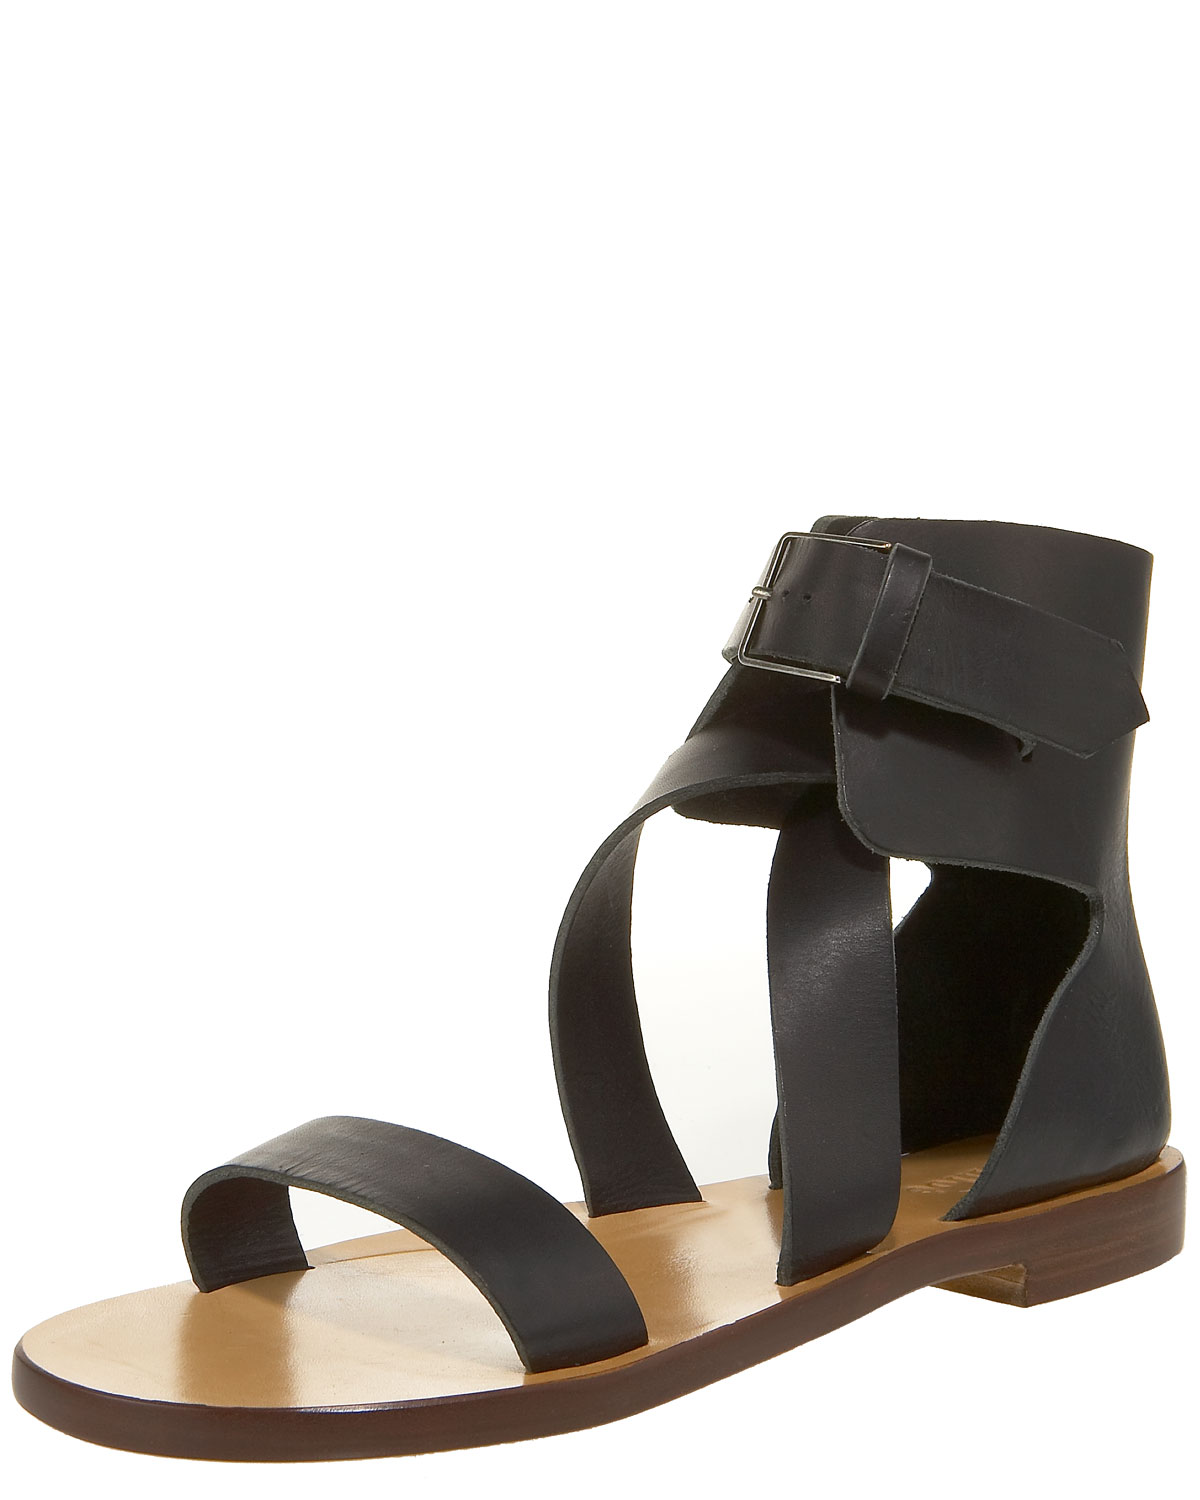 Chlo 233 Ankle Wrap Flat Sandal In Black Lyst